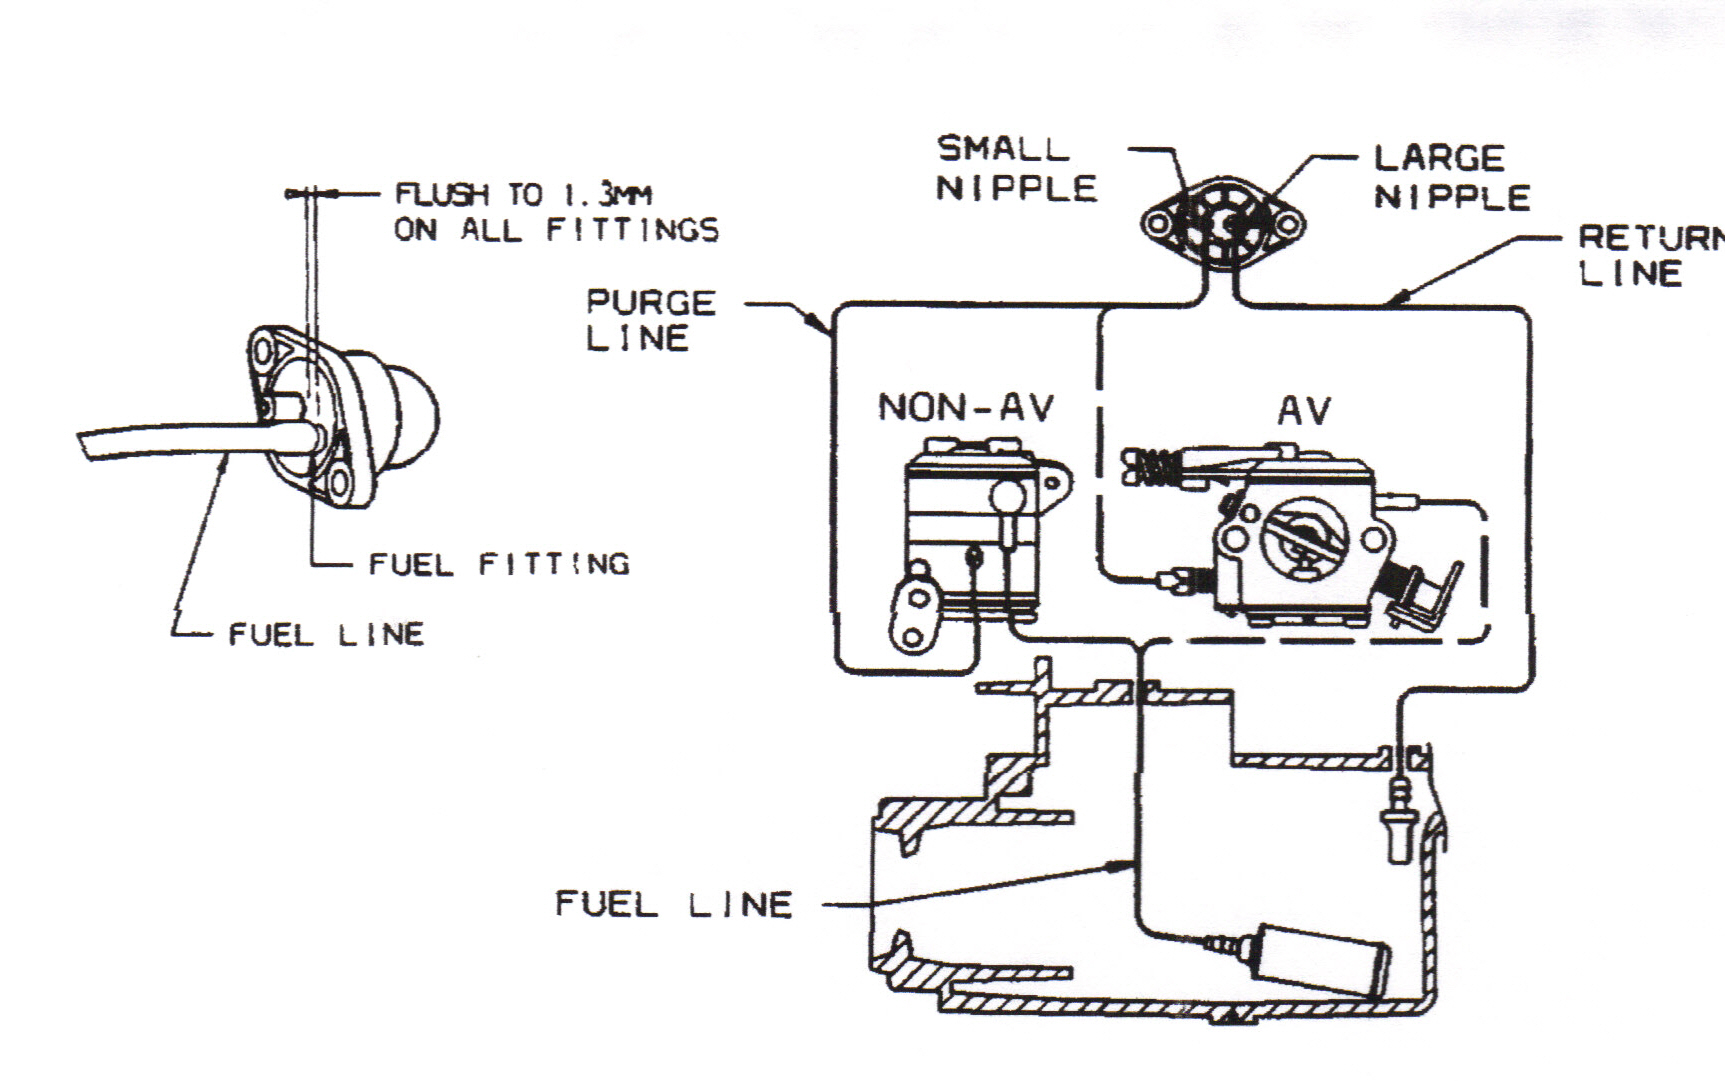 Echo Tiller Wiring Diagram Another Blog About For Poulan Lawn Mower Troy Built Tc 210 Fuel Line With Filter Go On Primer Bulb Side Rh Justanswer